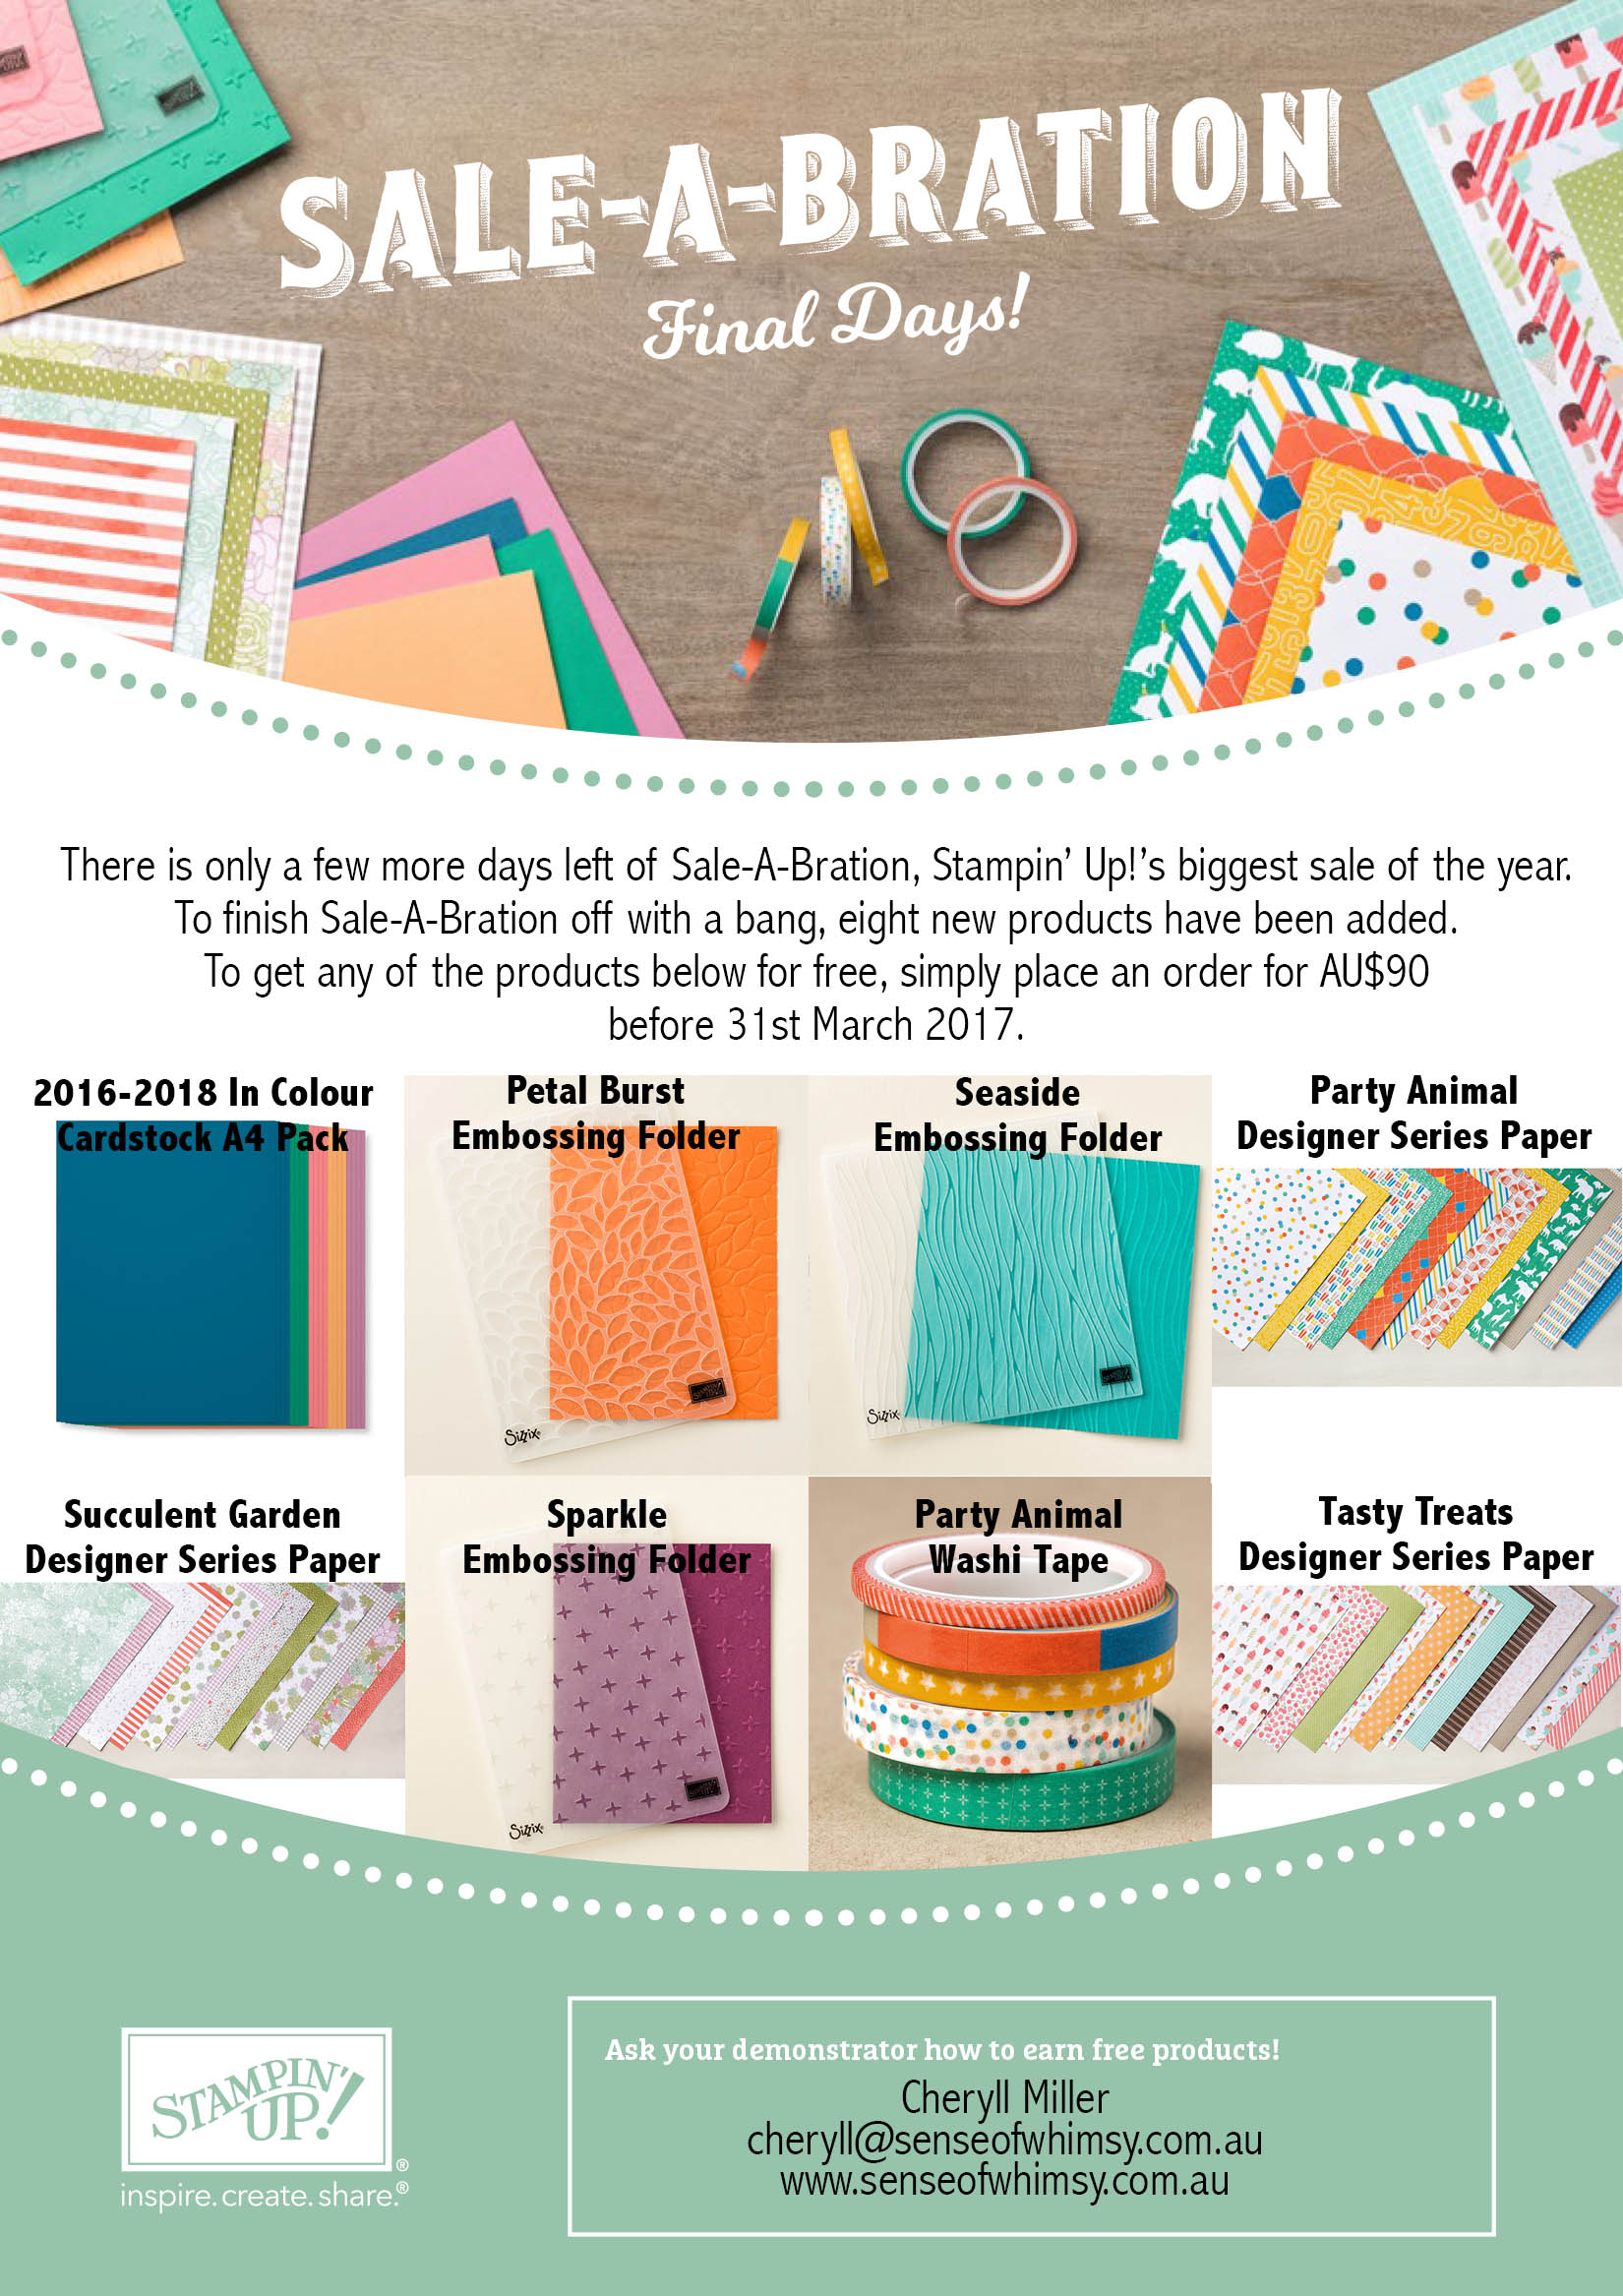 Final Sale-A-Bration Items